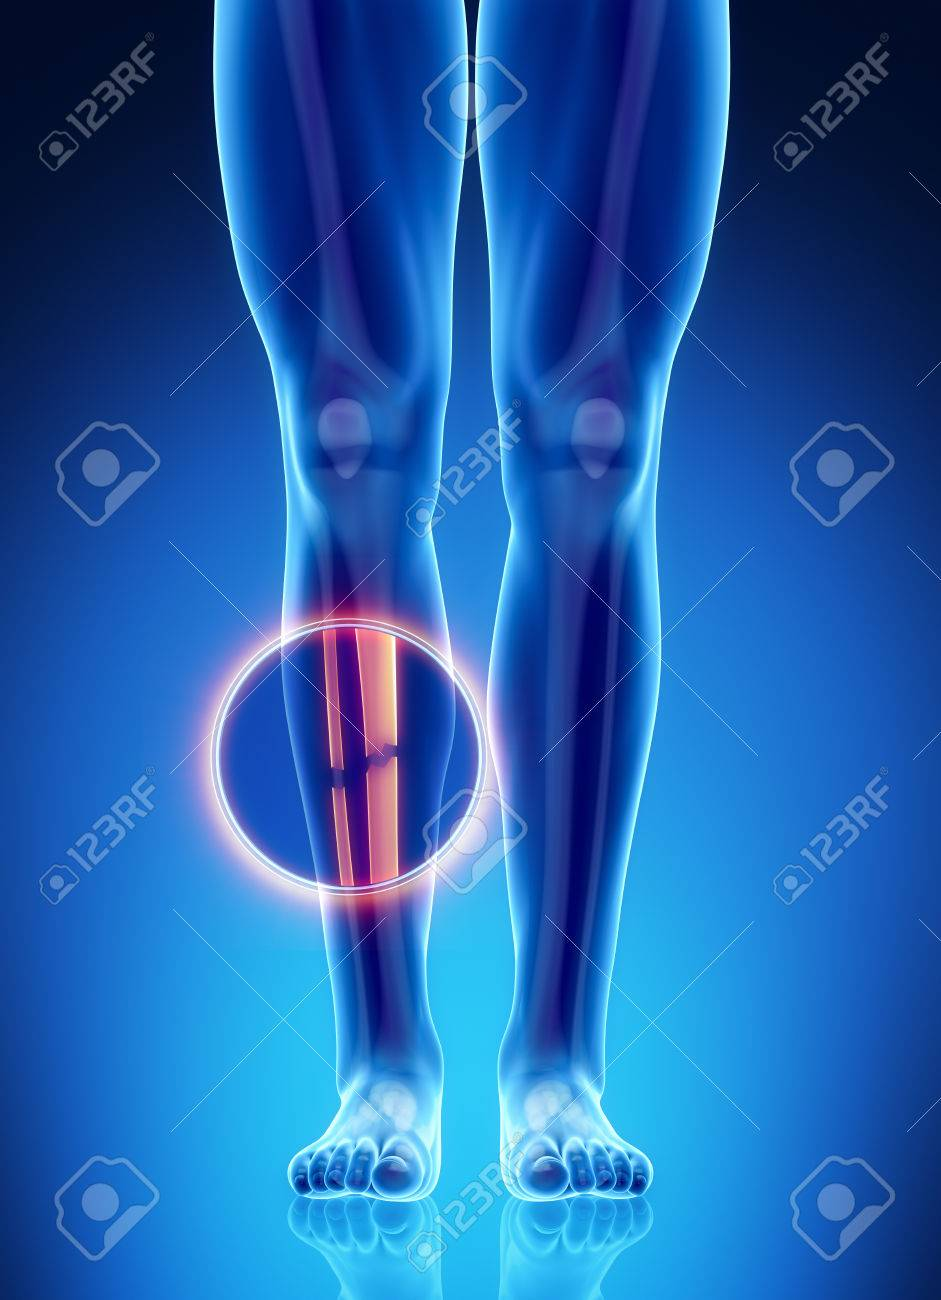 Male Bone Anatomy Fibula And Tibia Broken Stock Photo, Picture And ...